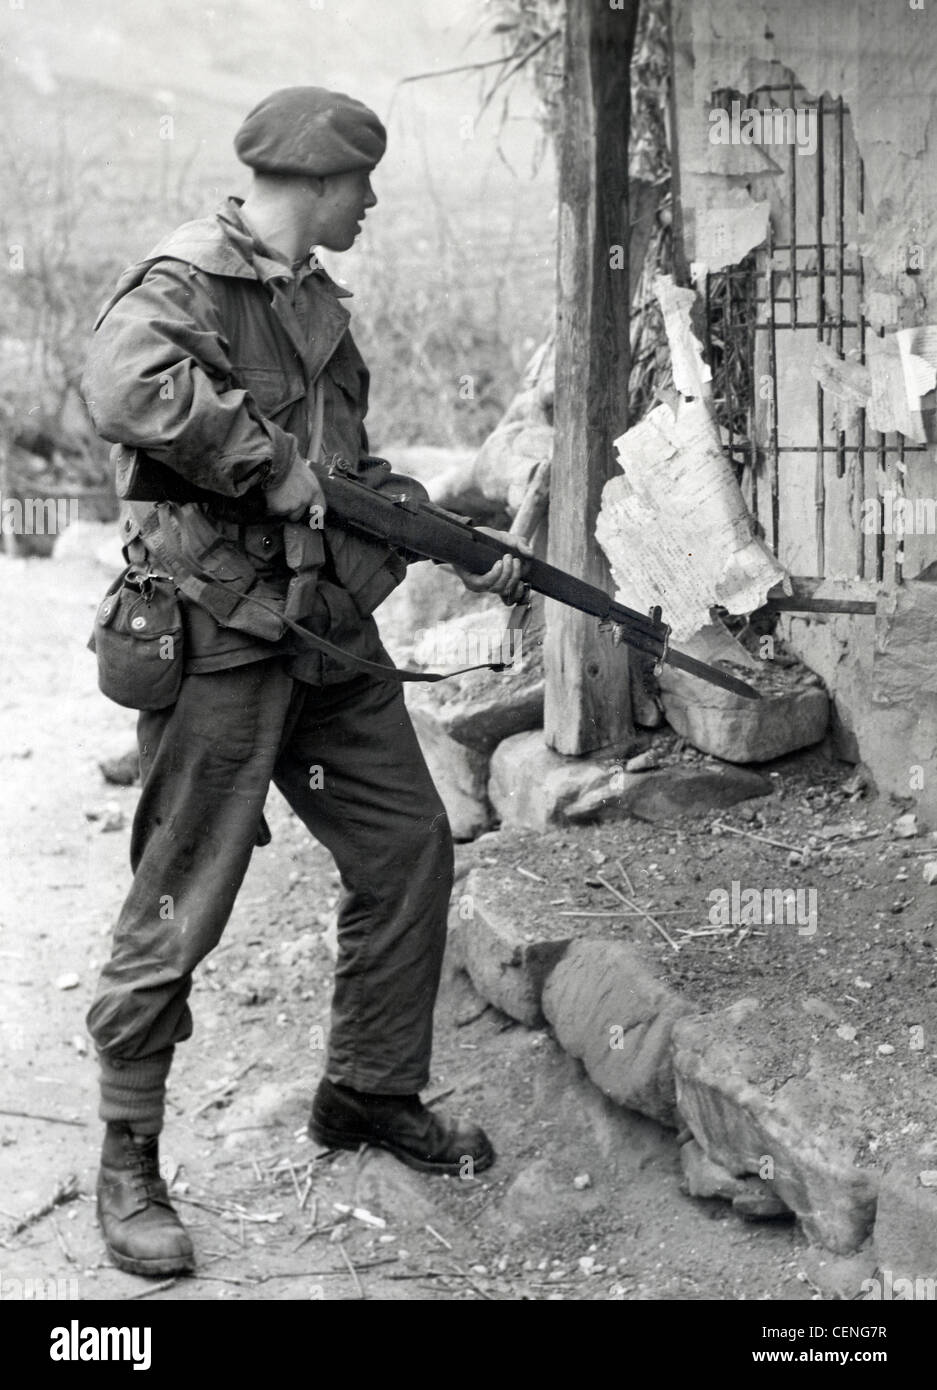 Korean War Stock Photos & Korean War Stock Images - Alamy